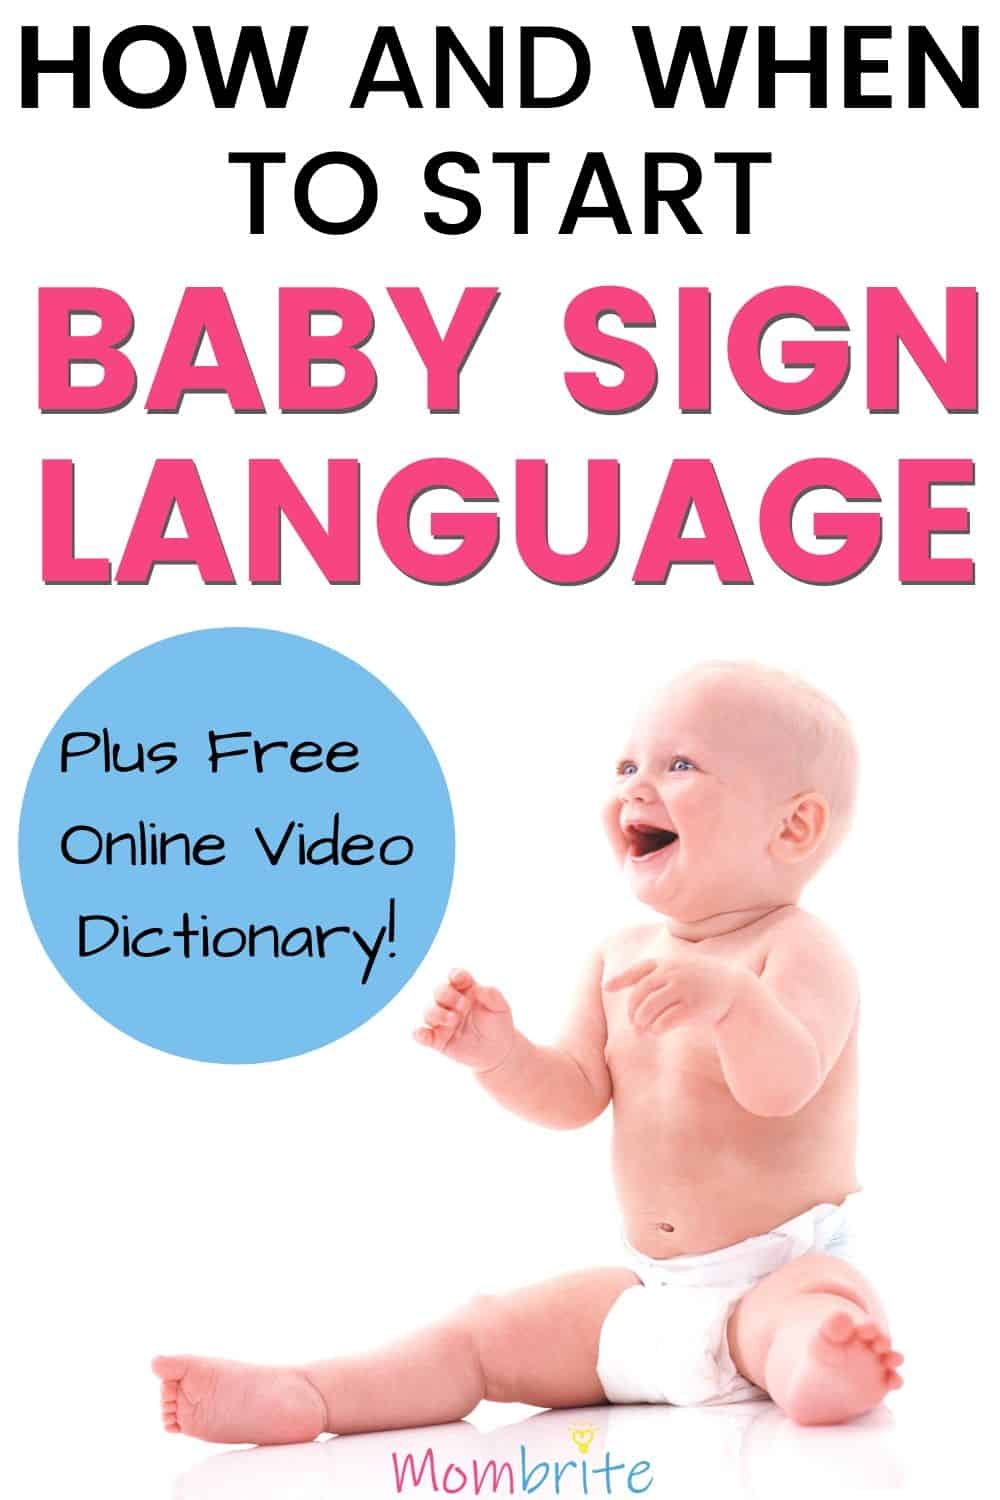 when-and-how-to-start-baby-sign-language